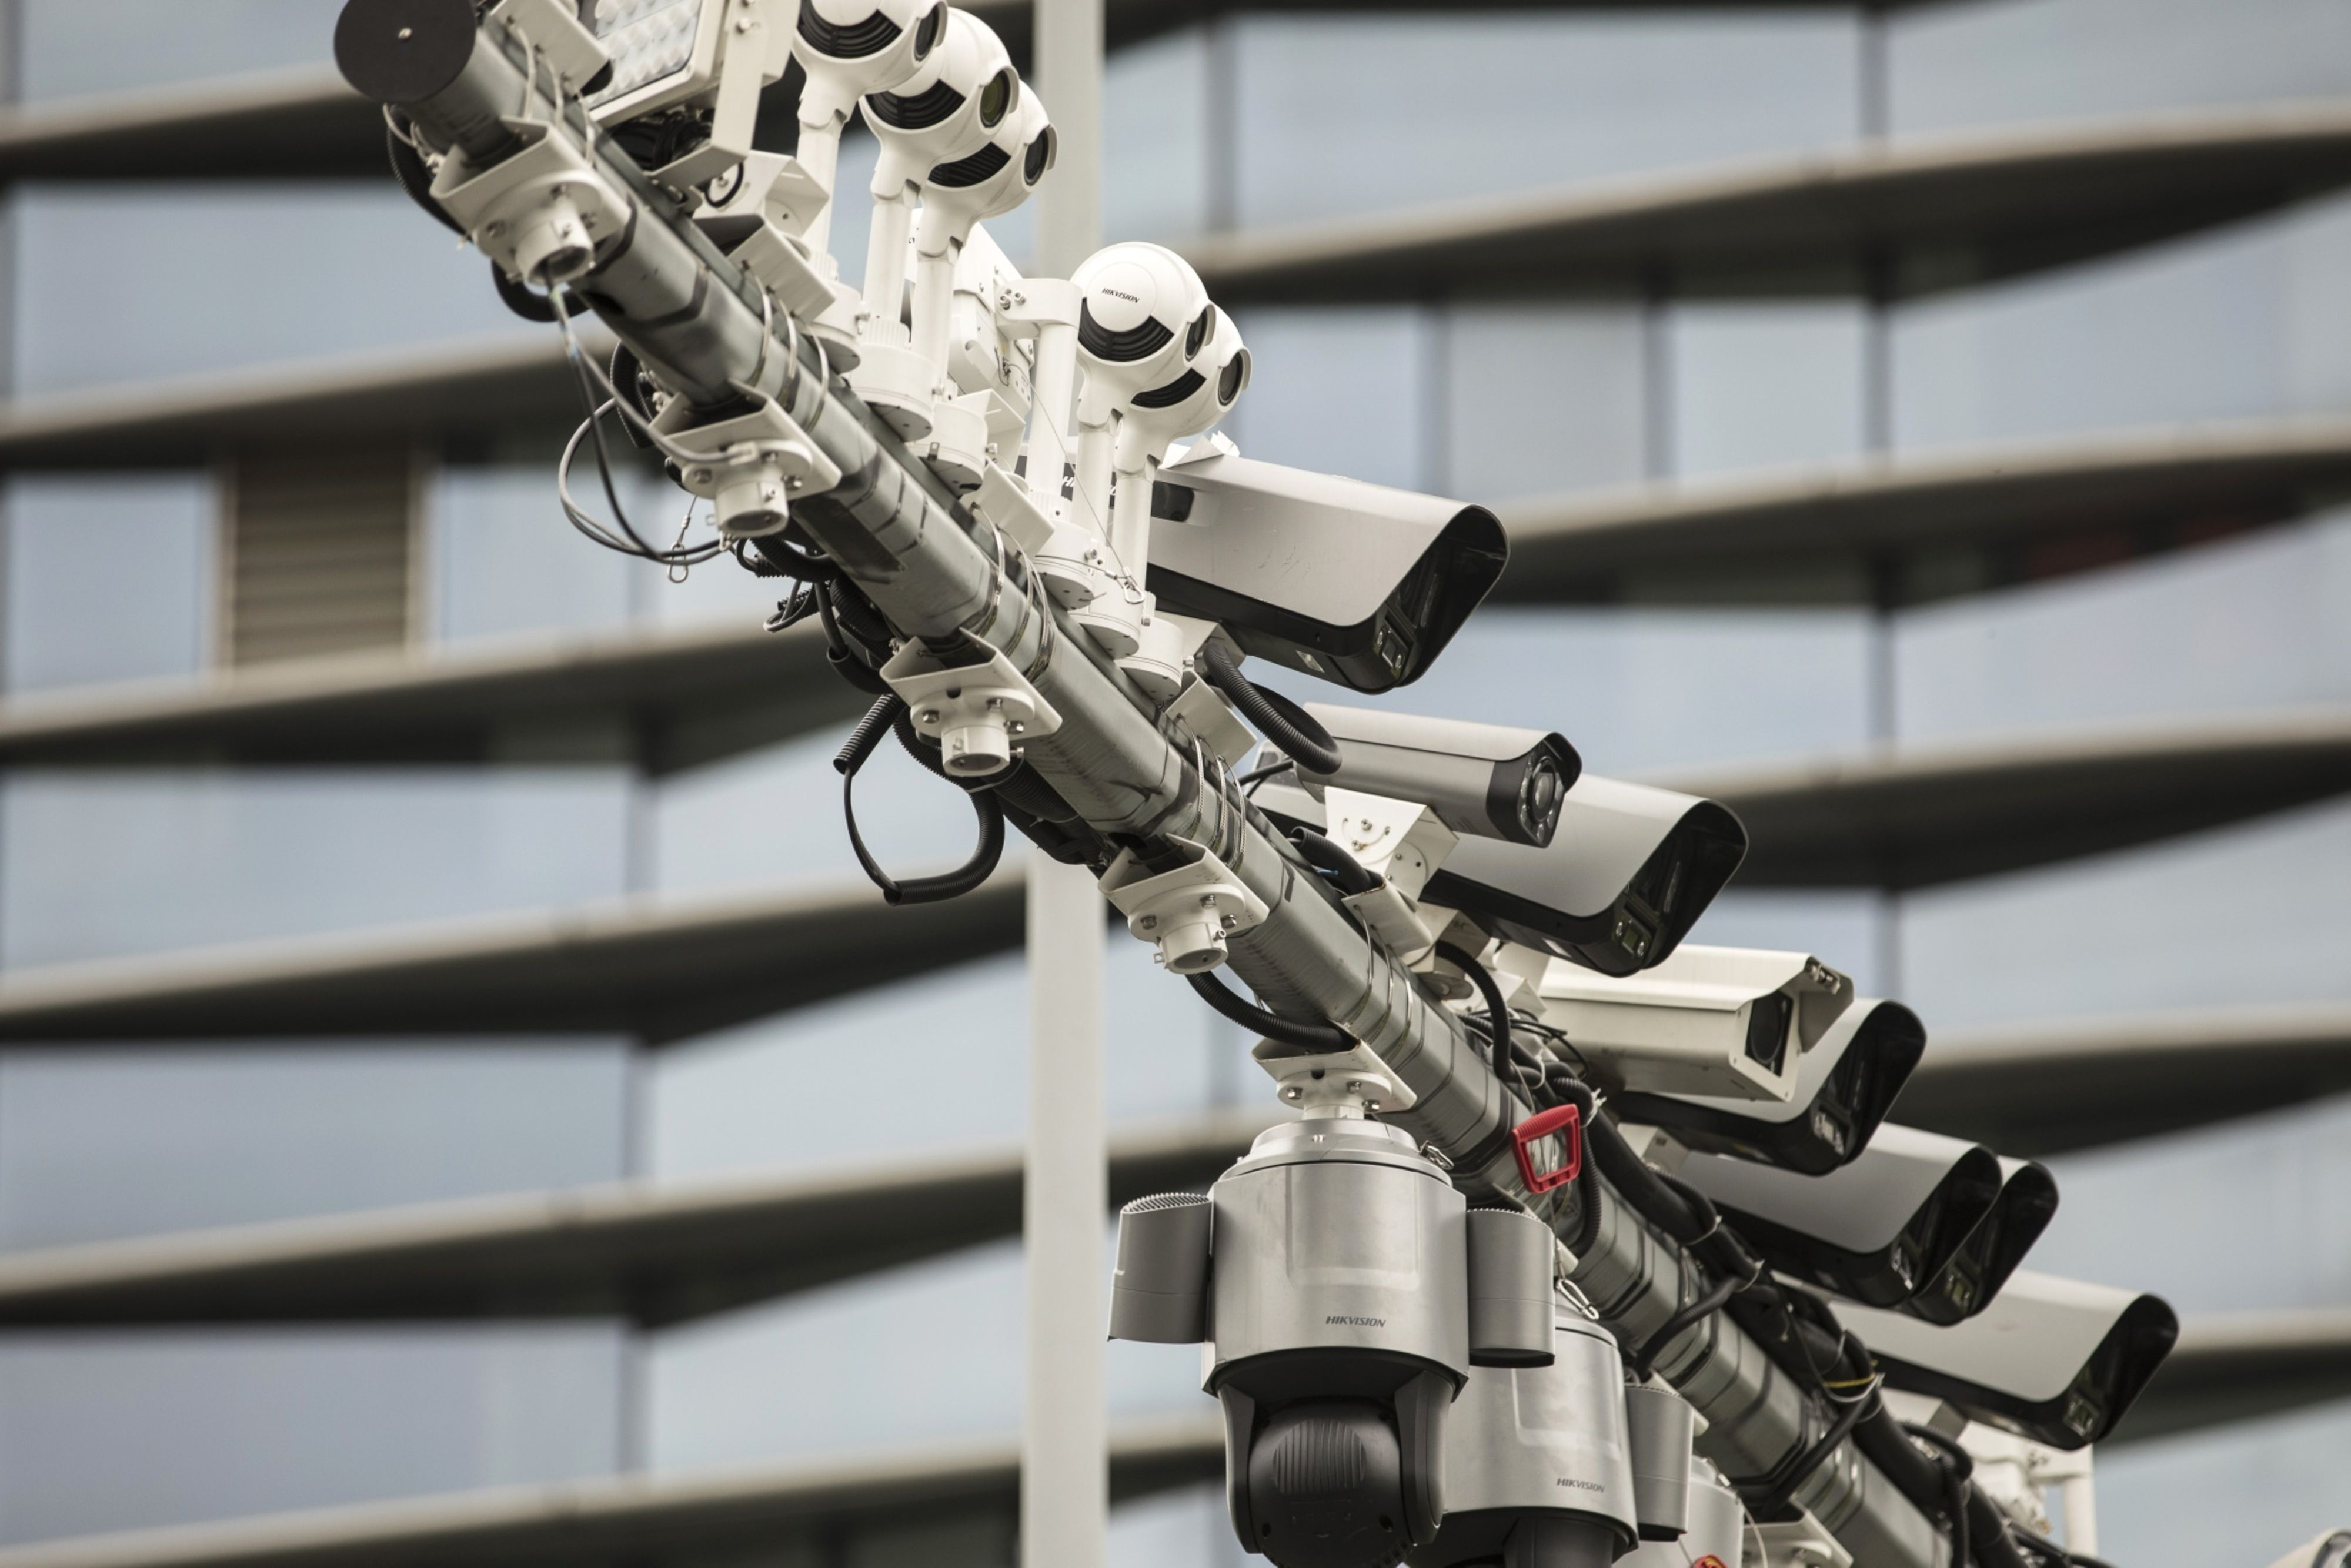 Surveillance cameras fill up a pole at a testing station near the head quarters of the Hangzhou Hikvision Digital Technology Co., Ltd. in Hangzhou, China